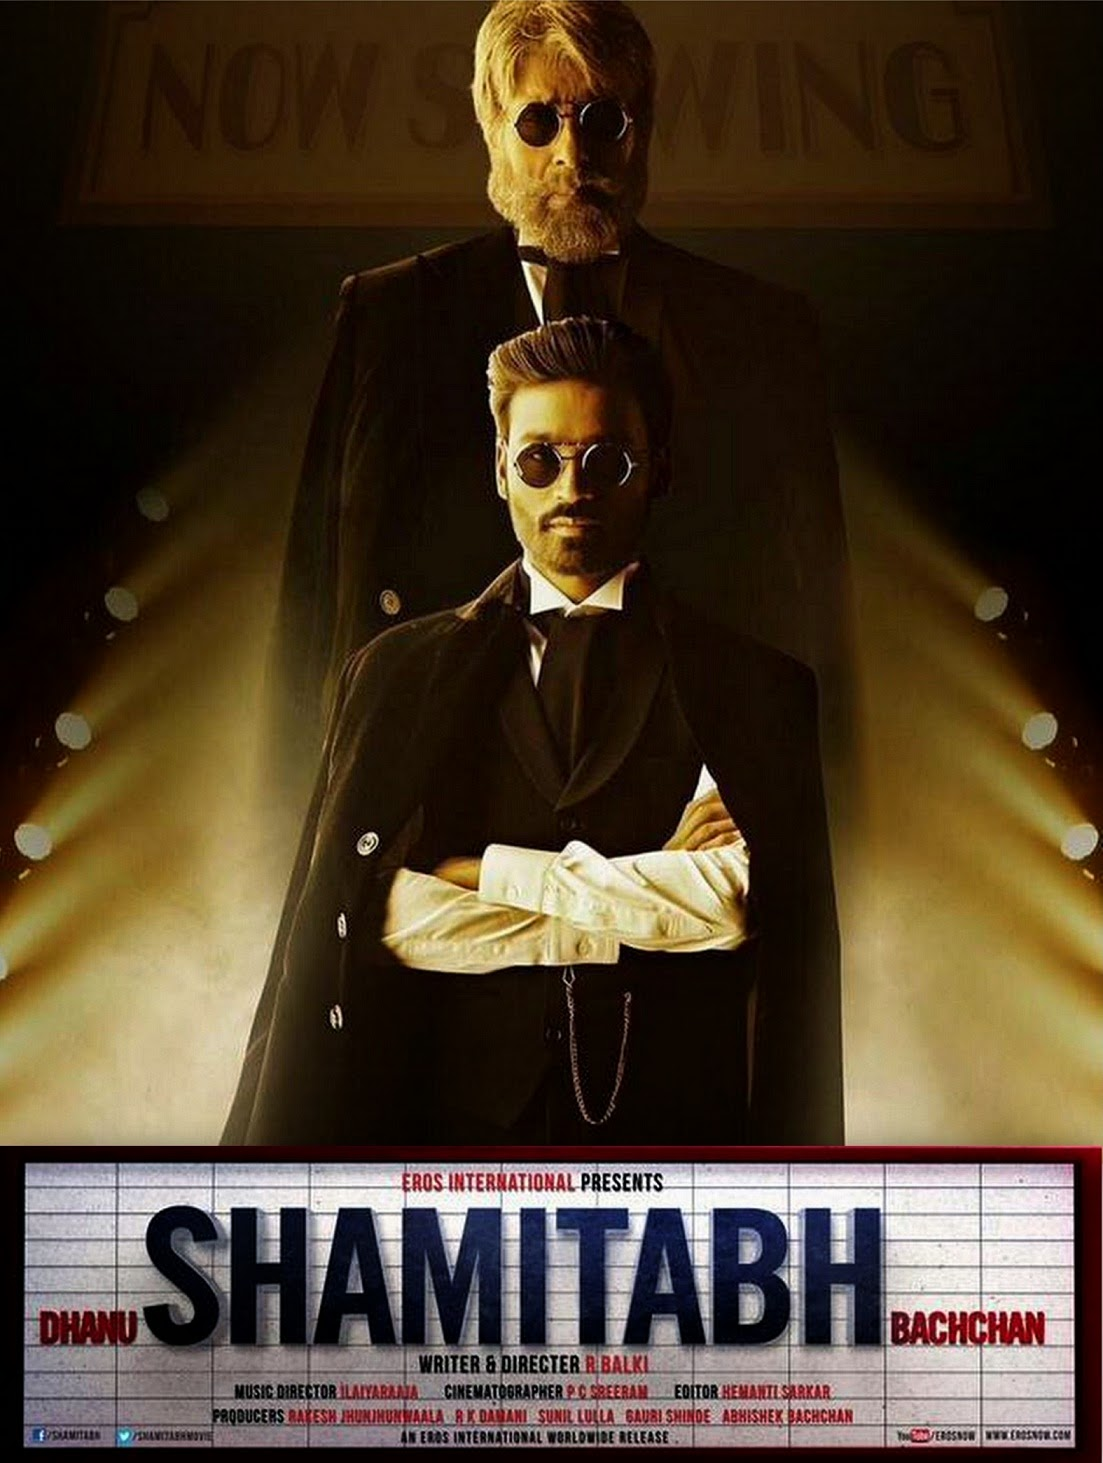 Tall Amitabh Bachchan behind Dhanush in Shamitabh movie poster